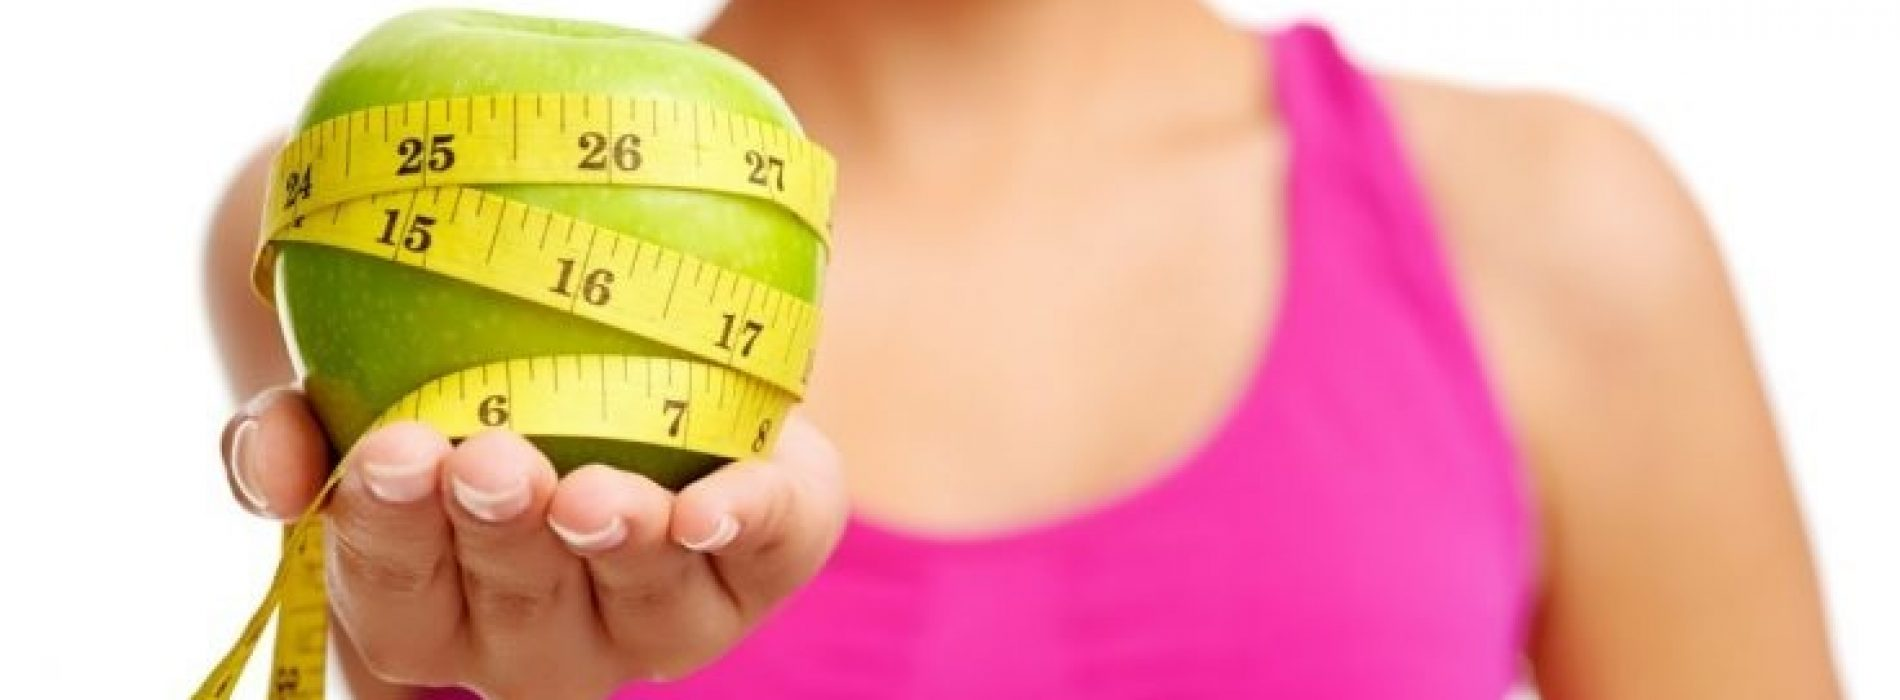 Why You Should Choose Best Weight Loss Programs?